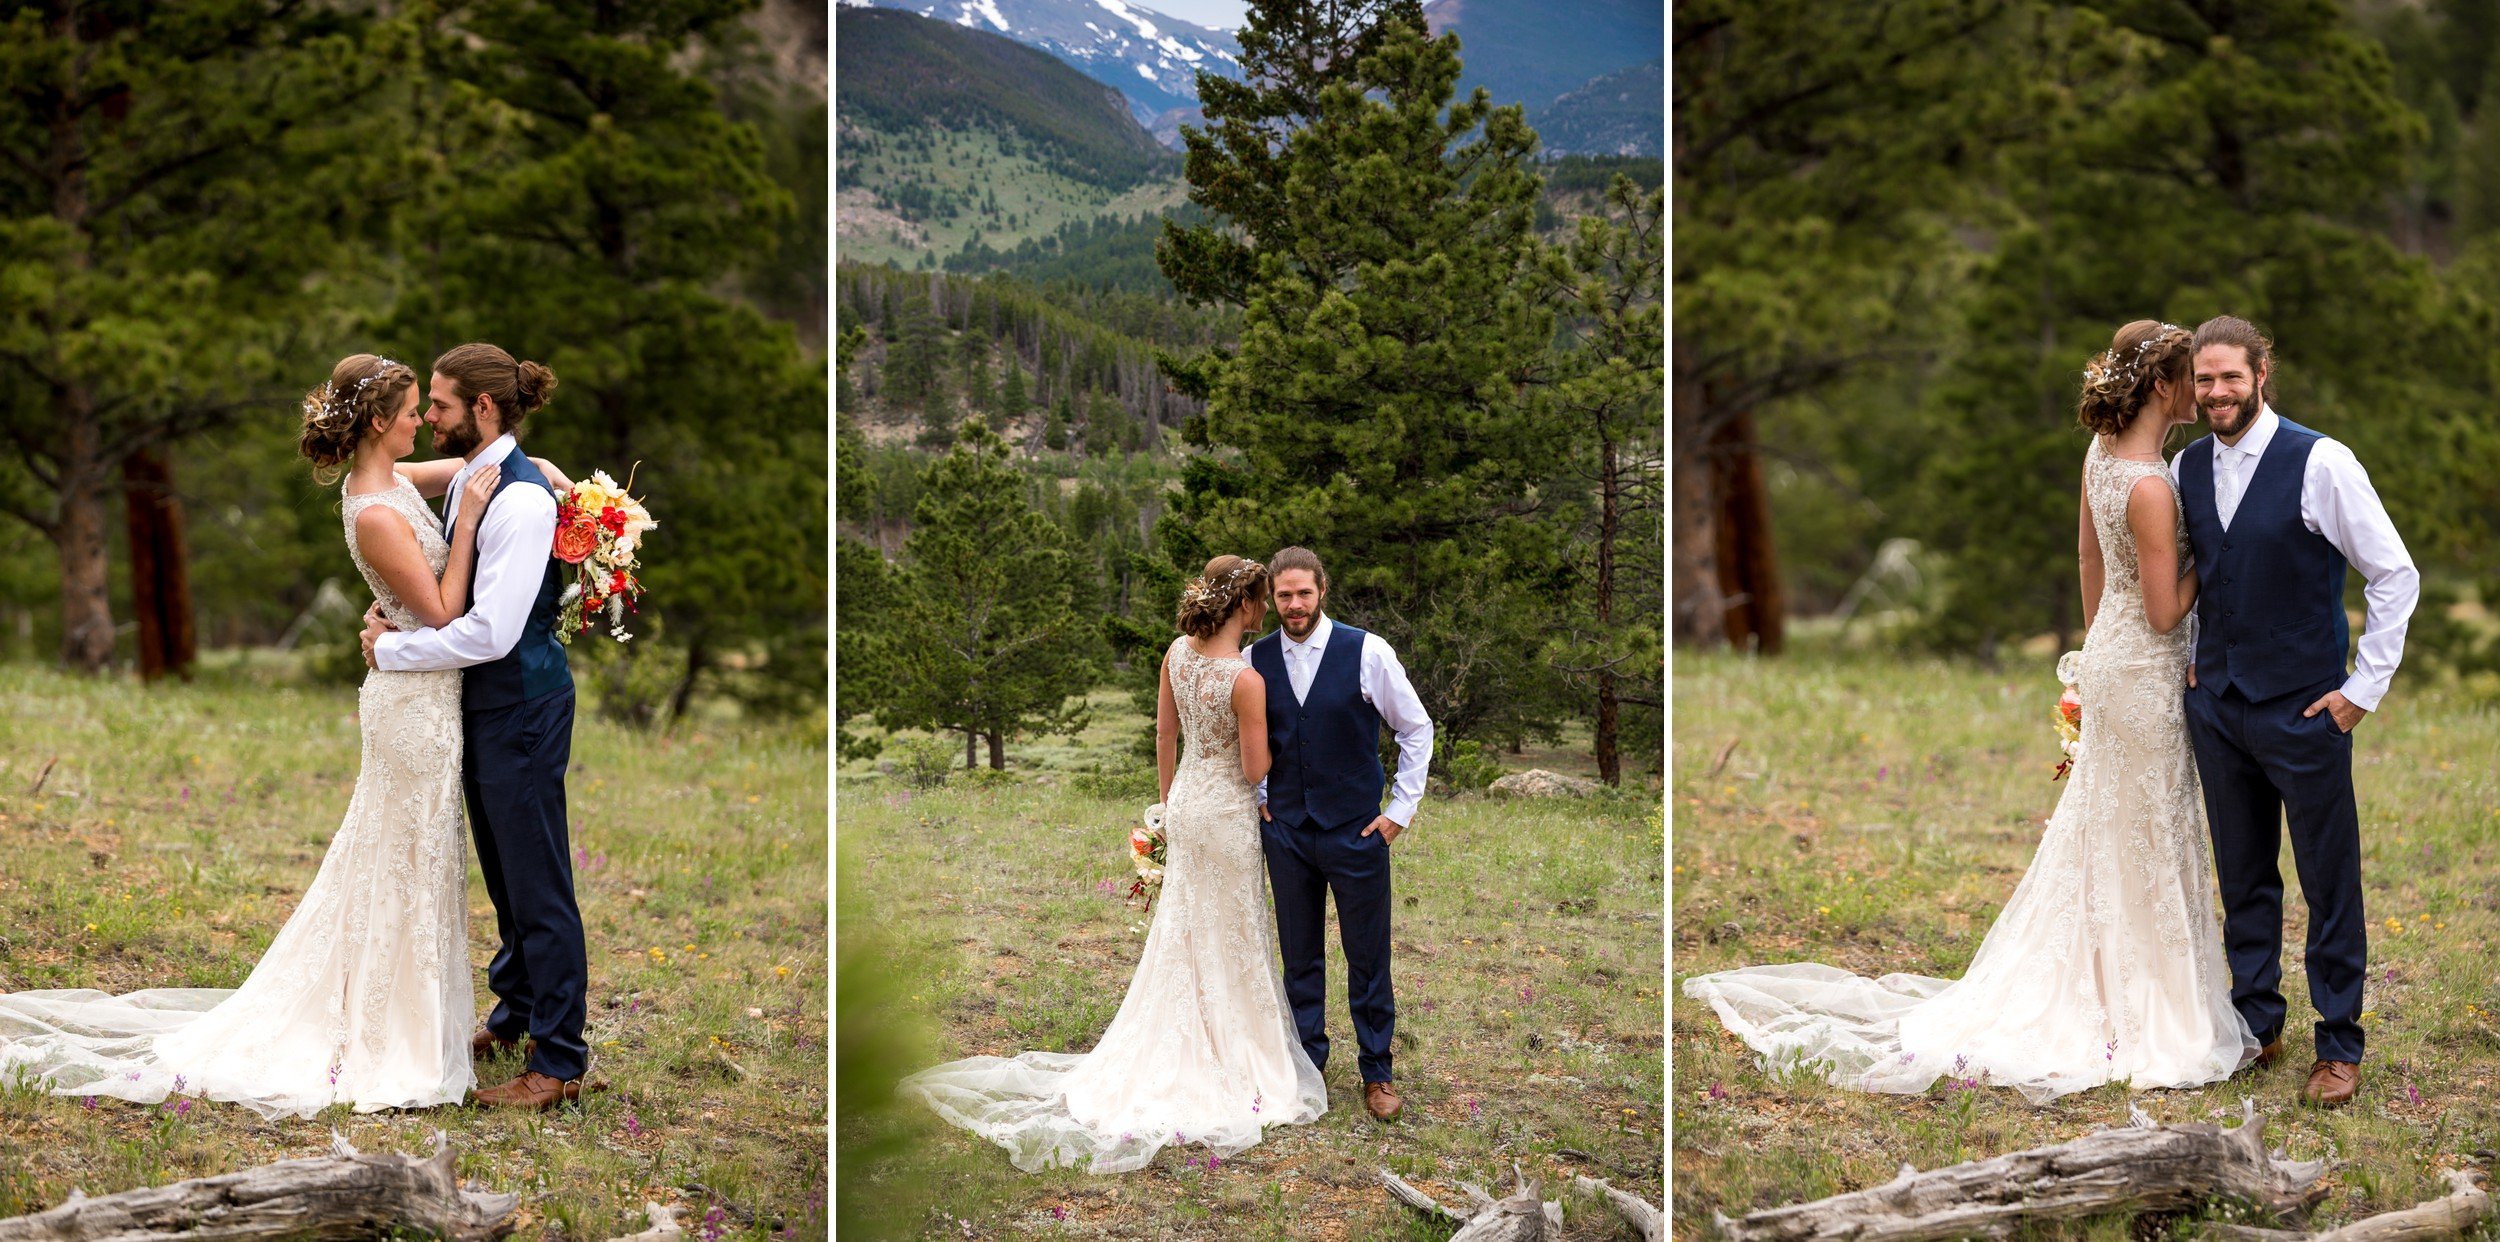 YMCA_Rockies_Estes_Park_Colorado_Kristopher_Lindsay_Photography_ 8.jpg